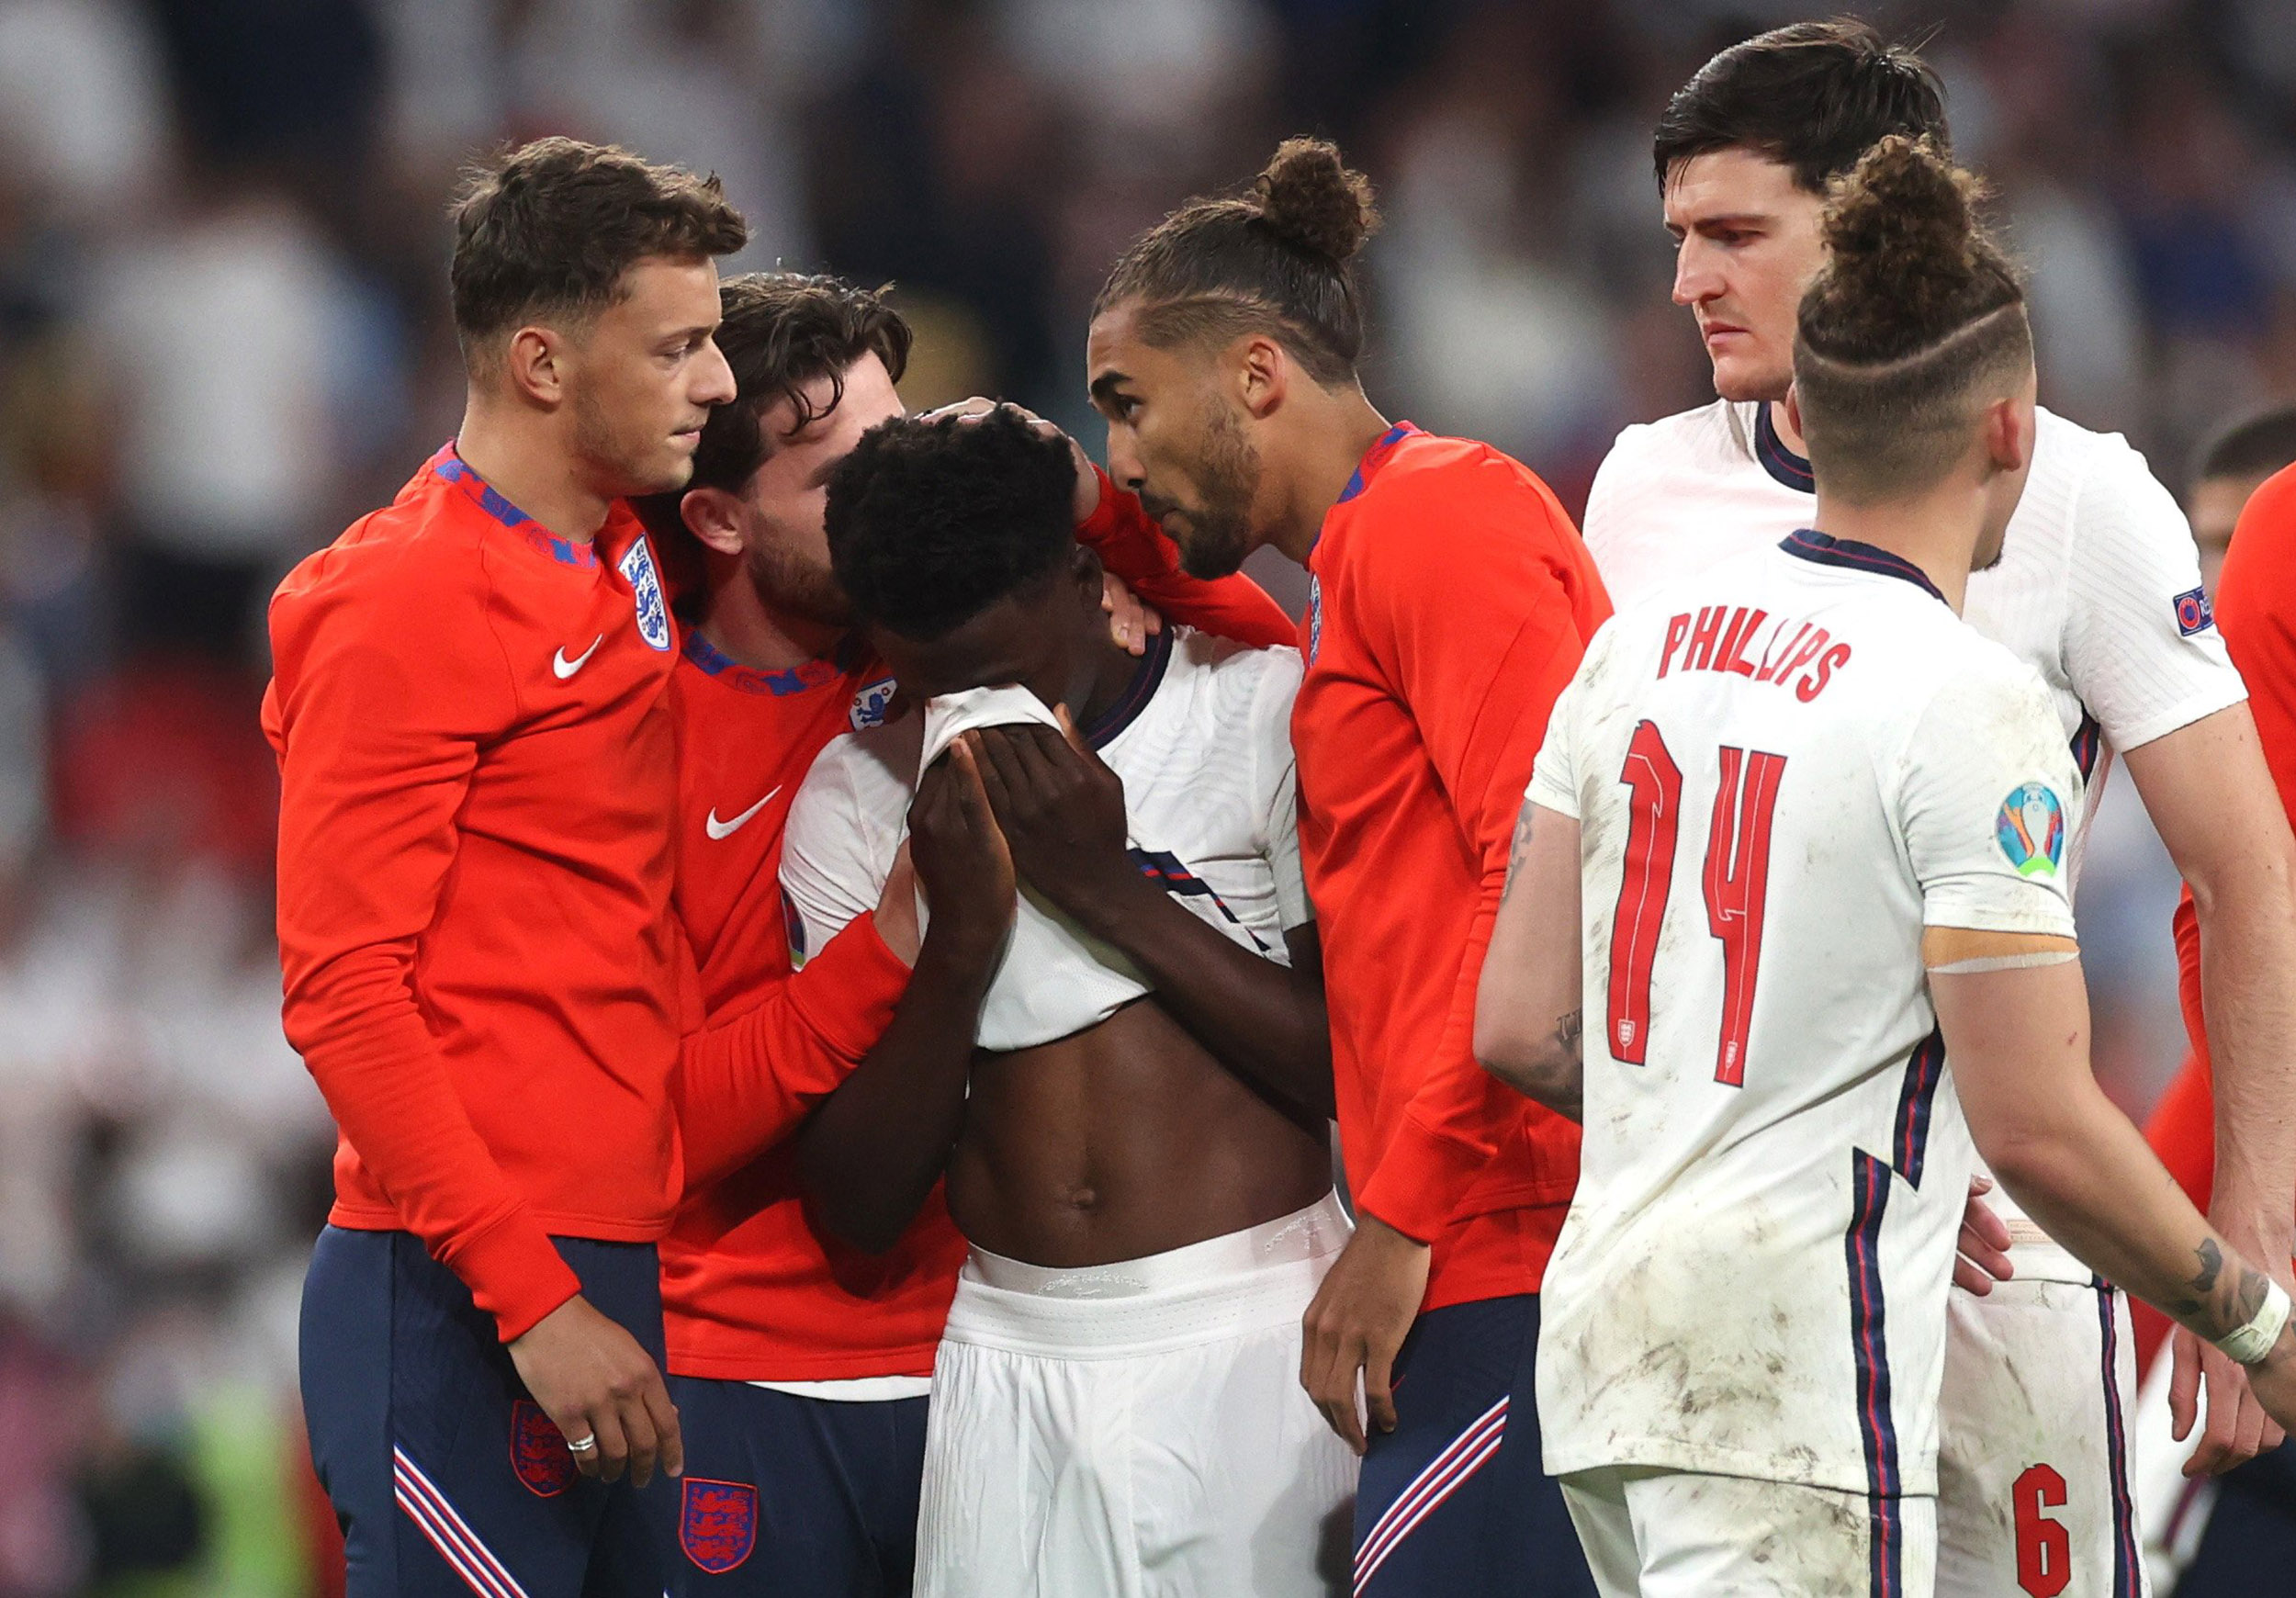 Three Black Players for England Racially Abused Online After Missing Penalty Kicks in Euro 2020 Soccer Final